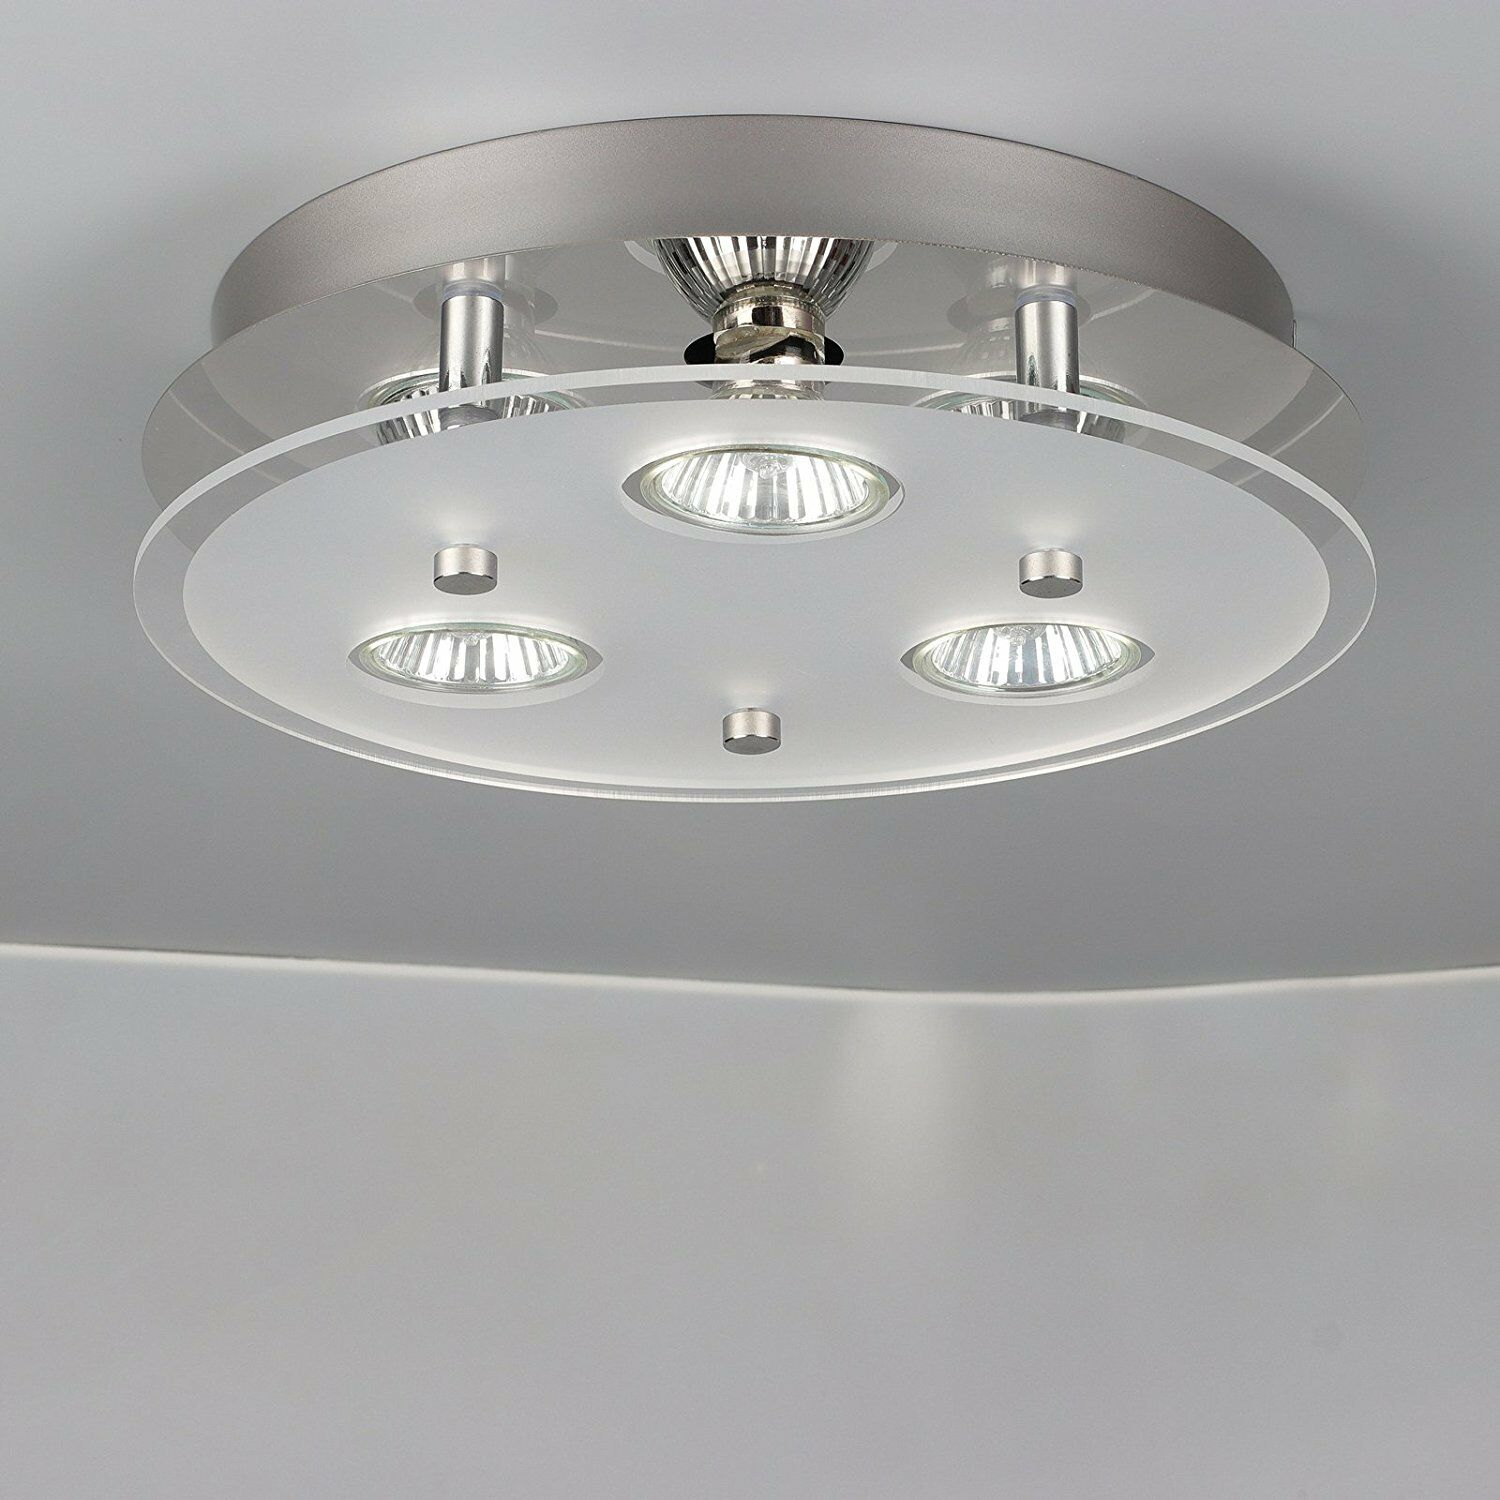 Modern 3 way gu10 led ceiling light fitting ceiling spotlight modern 3 way gu10 led ceiling light fitting ceiling spotlight kitchen lights uk 1 of 1free shipping see more aloadofball Image collections